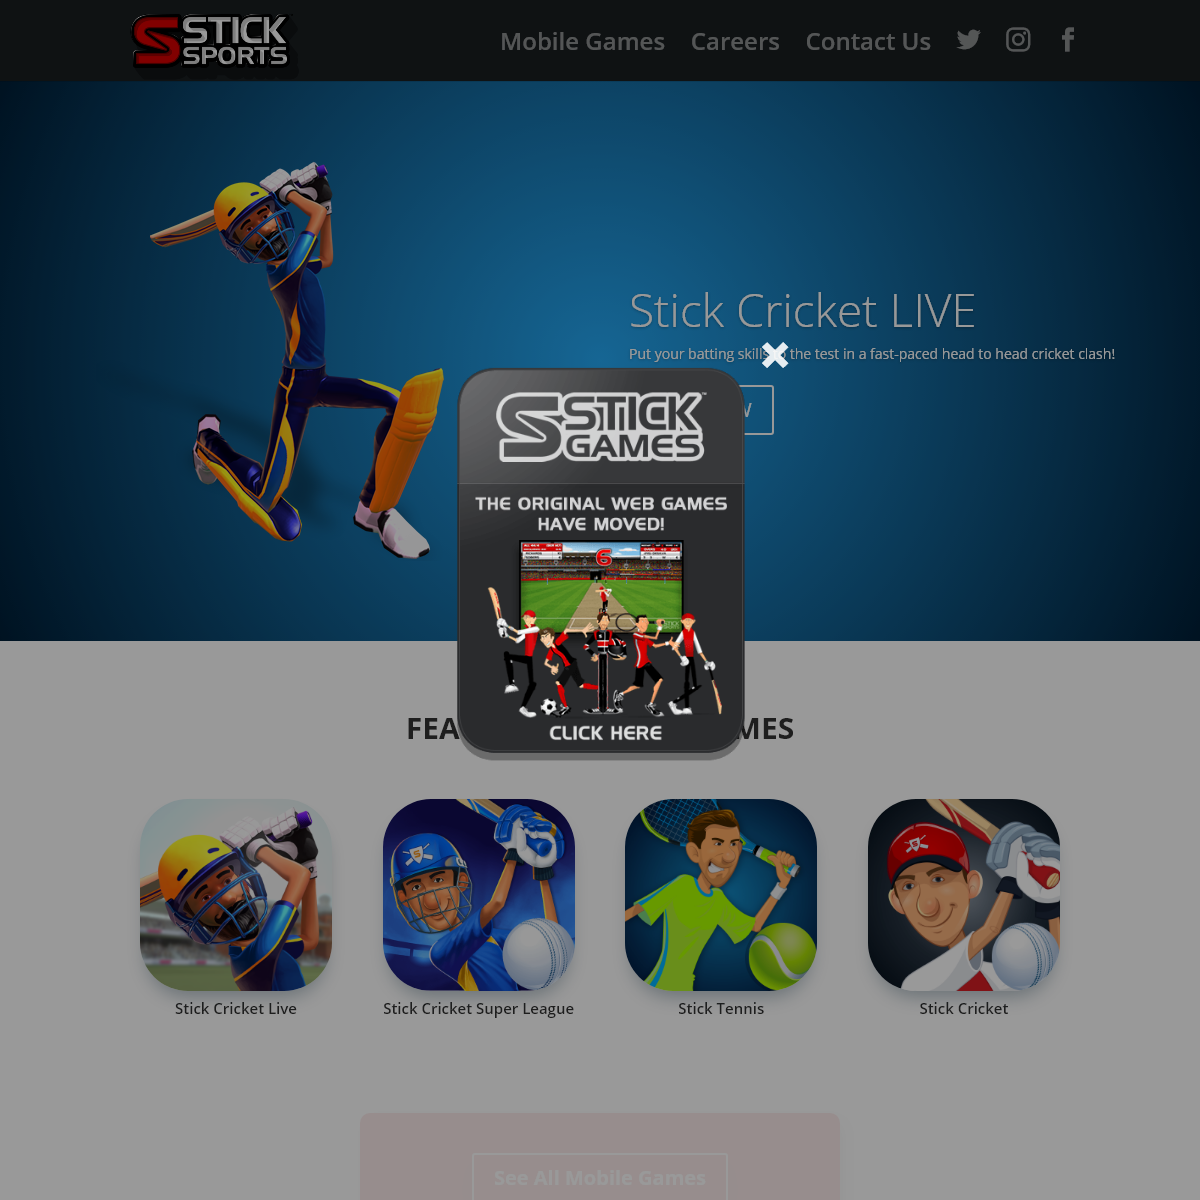 Stick Sports - The home of Stick Cricket and Stick Tennis - Stick Sports